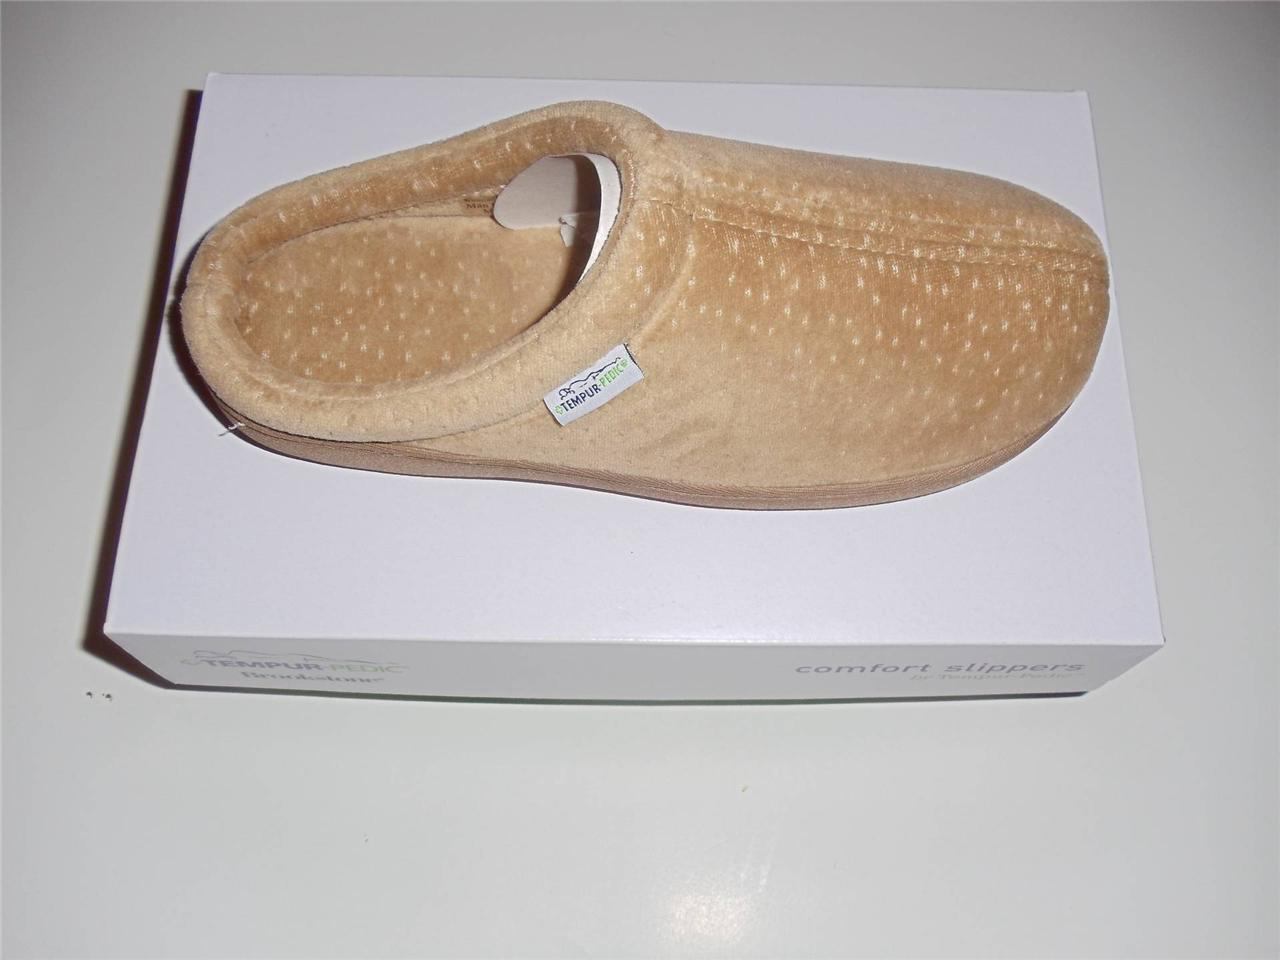 New-Tempur-Pedic-Brookstone-Womens-Comfort-Slippers-Classic-Velour-Tan